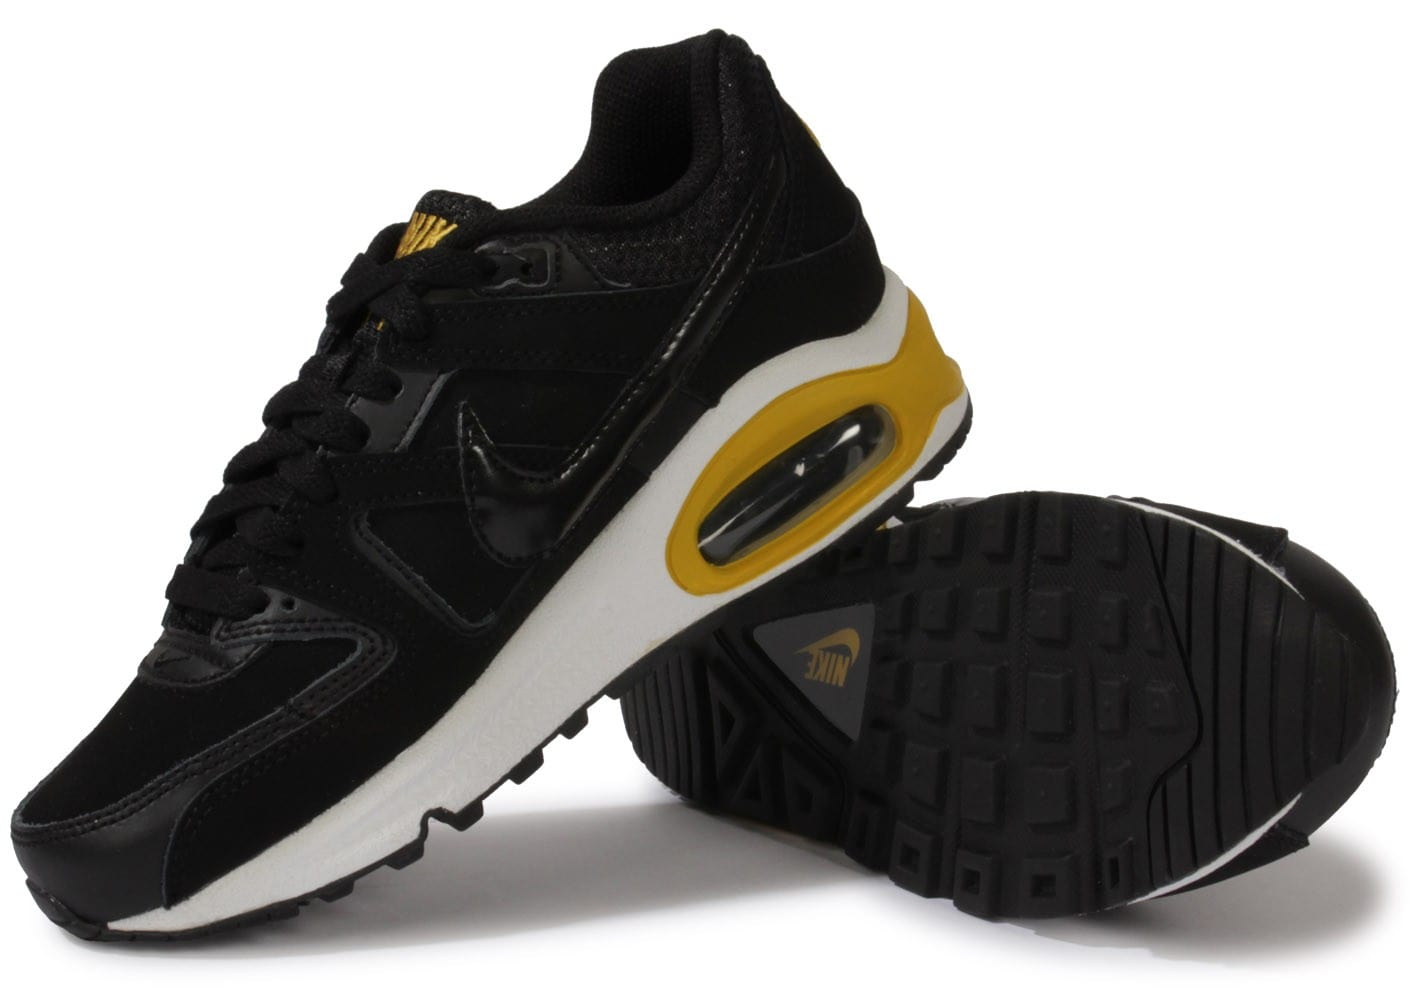 info for 1a6d9 f5221 chaussures nike air max command junior noir or vue dessous semelle